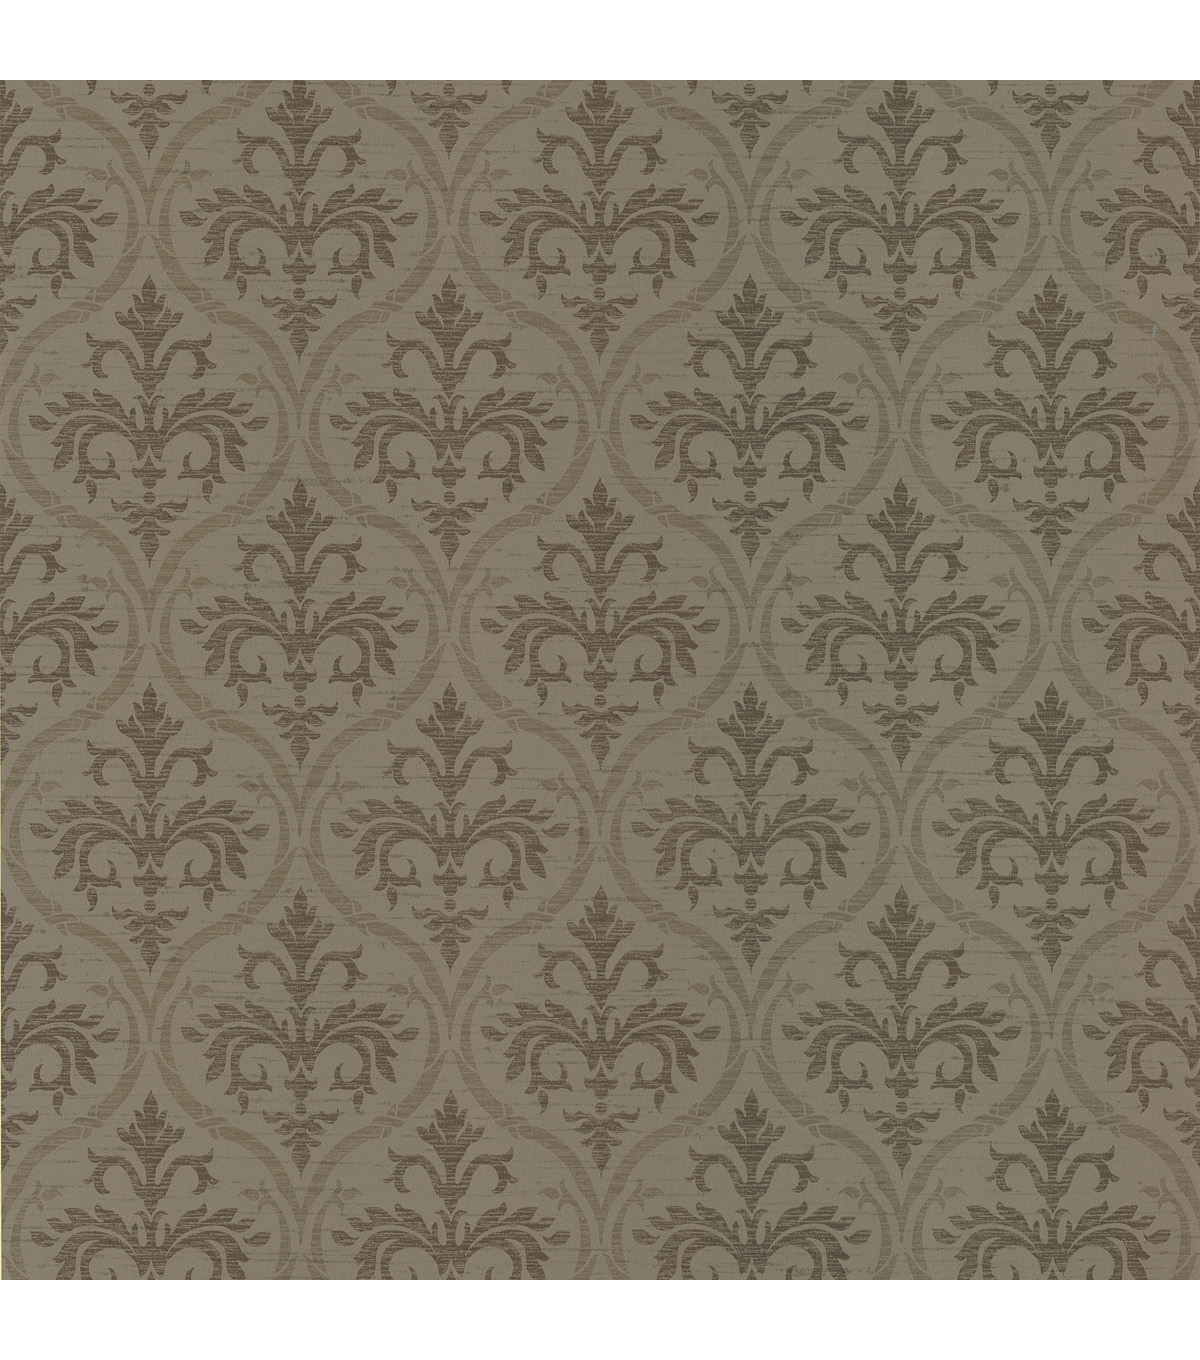 Florence Brown Ogee Damask Wallpaper Sample